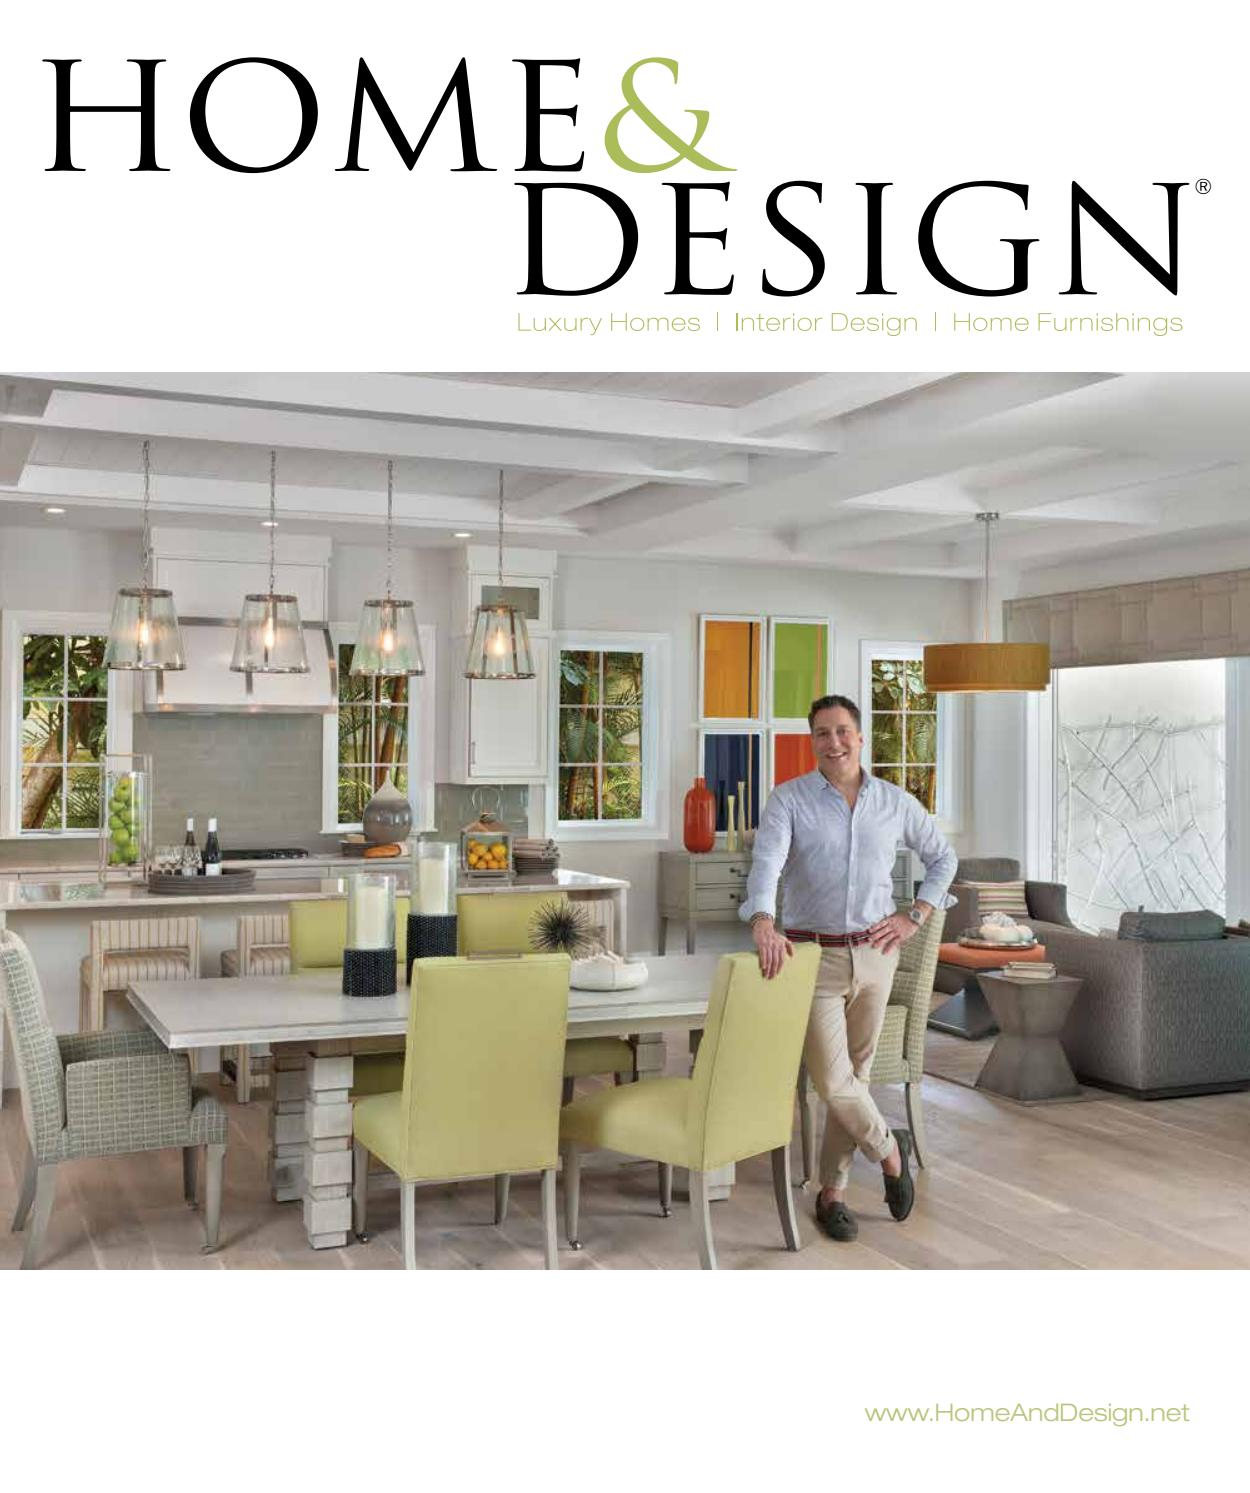 Home Design Magazine 2016 Southwest Florida Edition By Anthony Spano Issuu